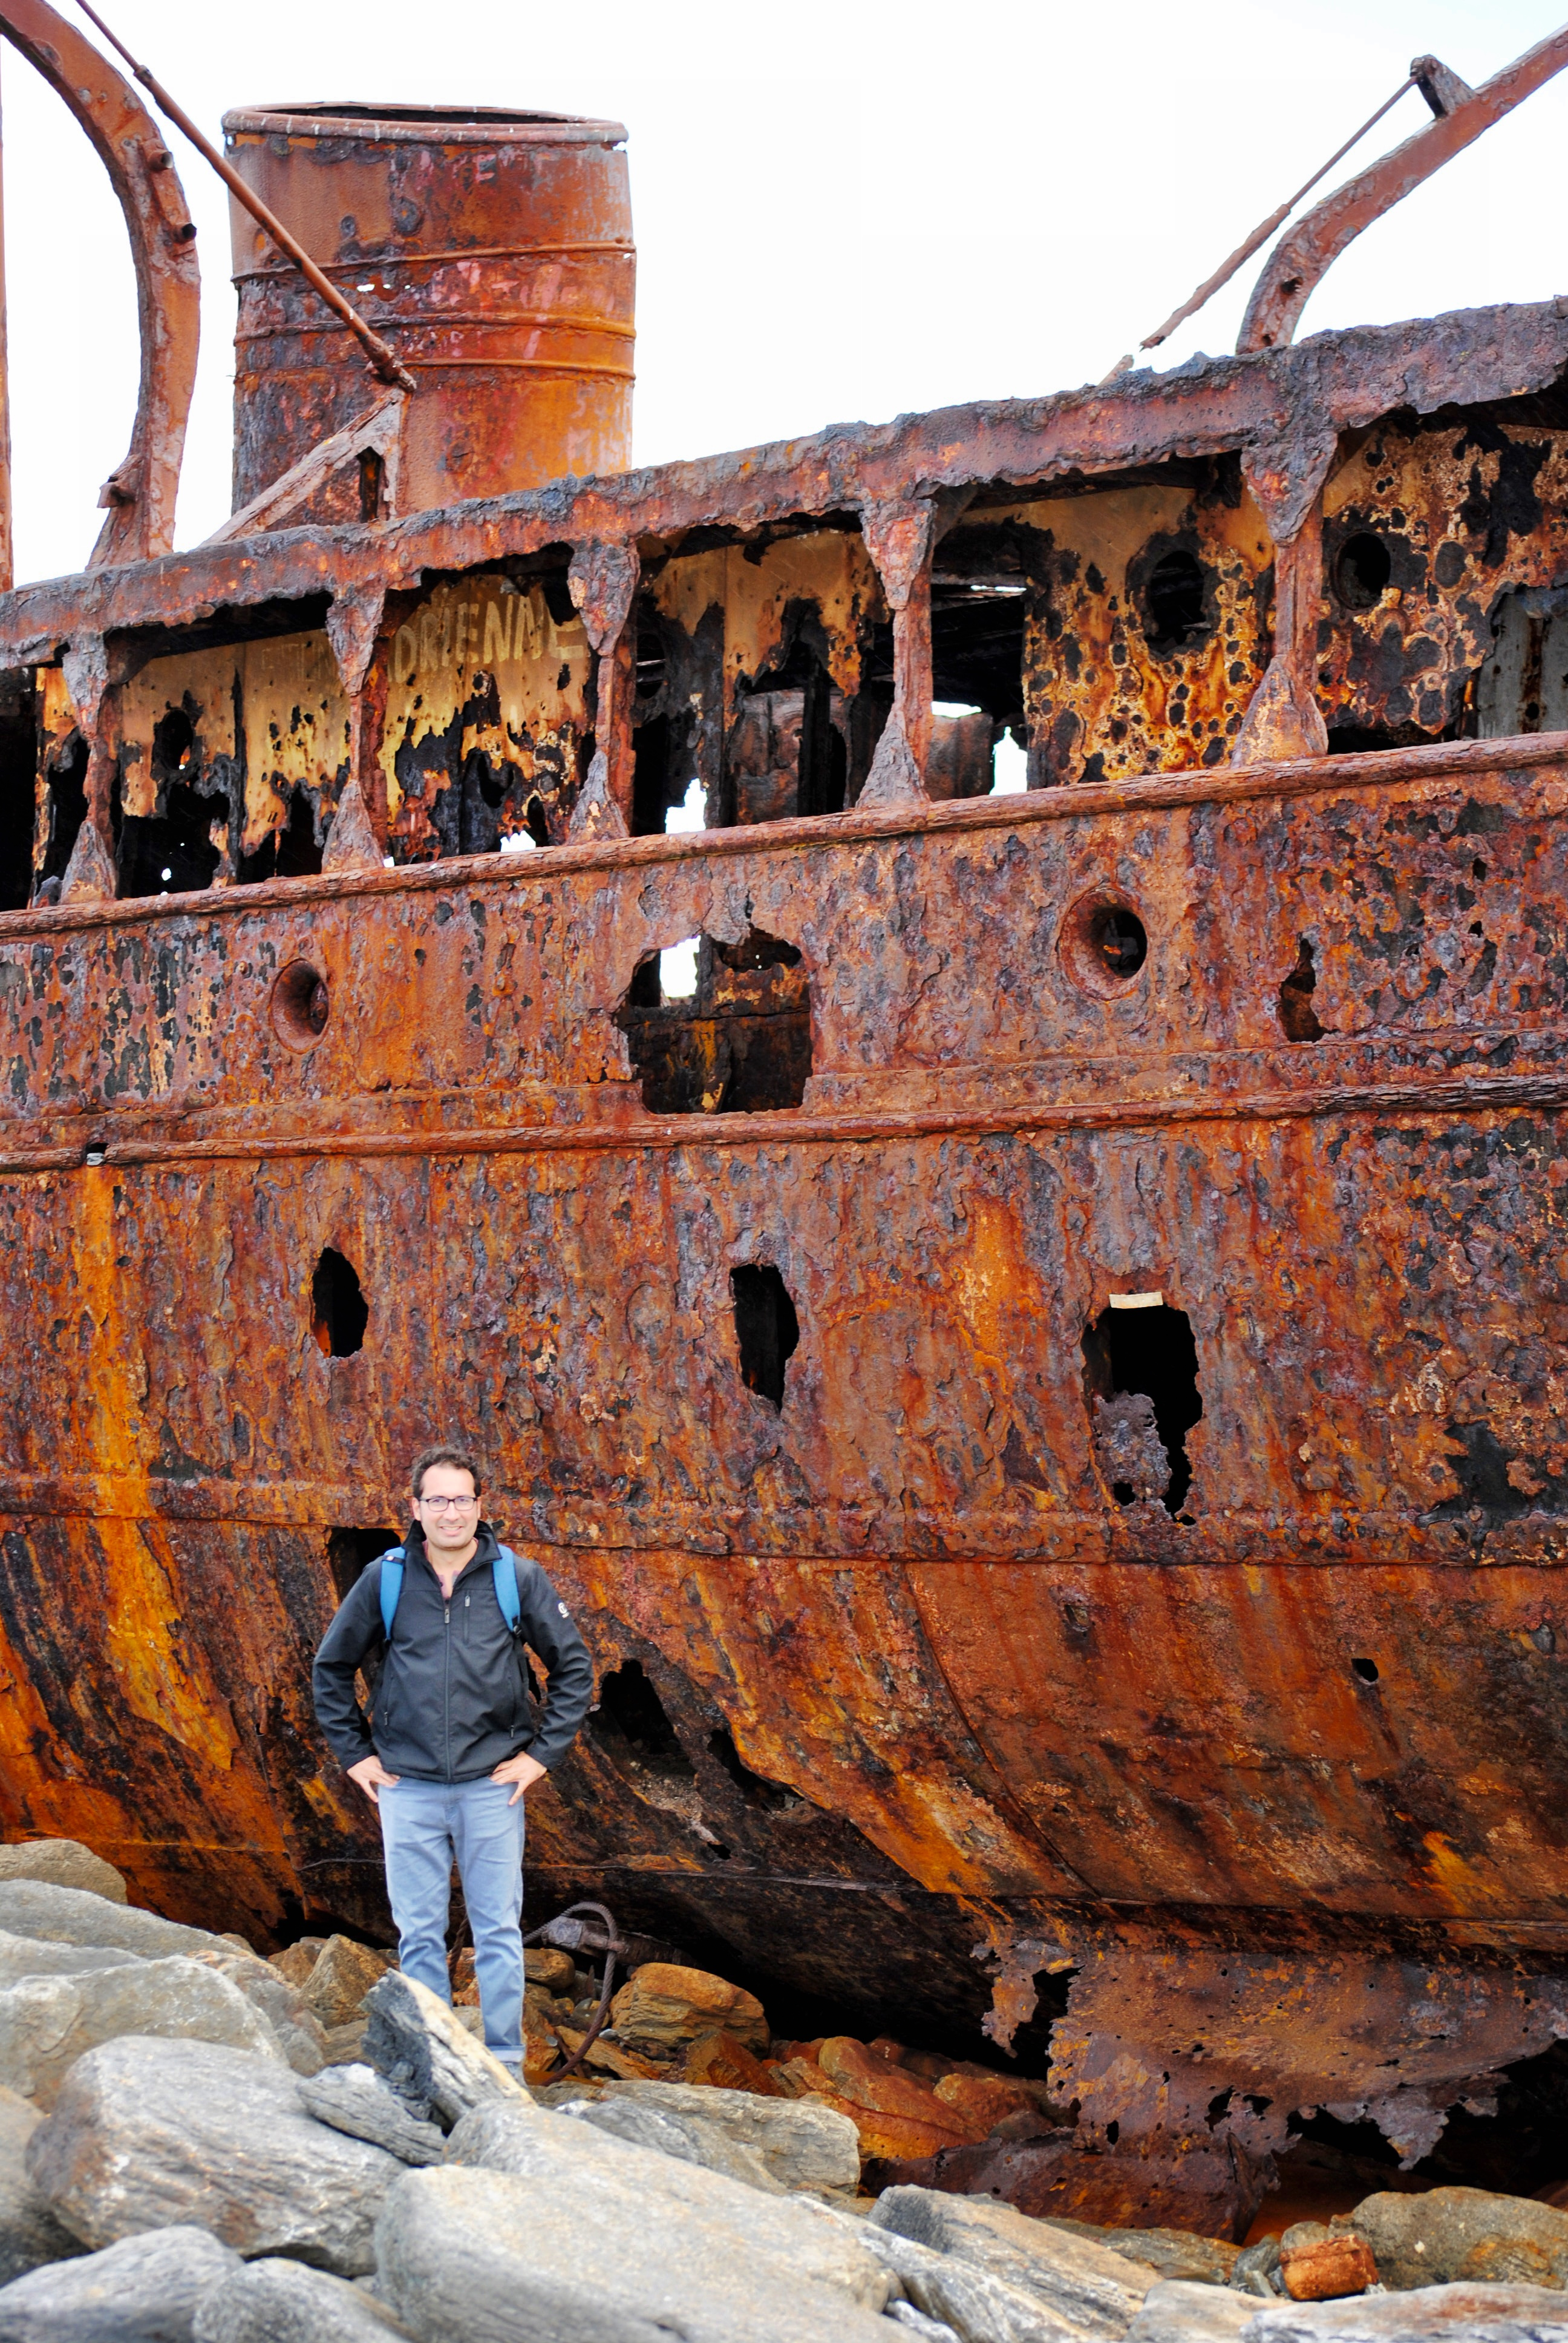 Plassey Shipwreck - Aran Islands - Ireland